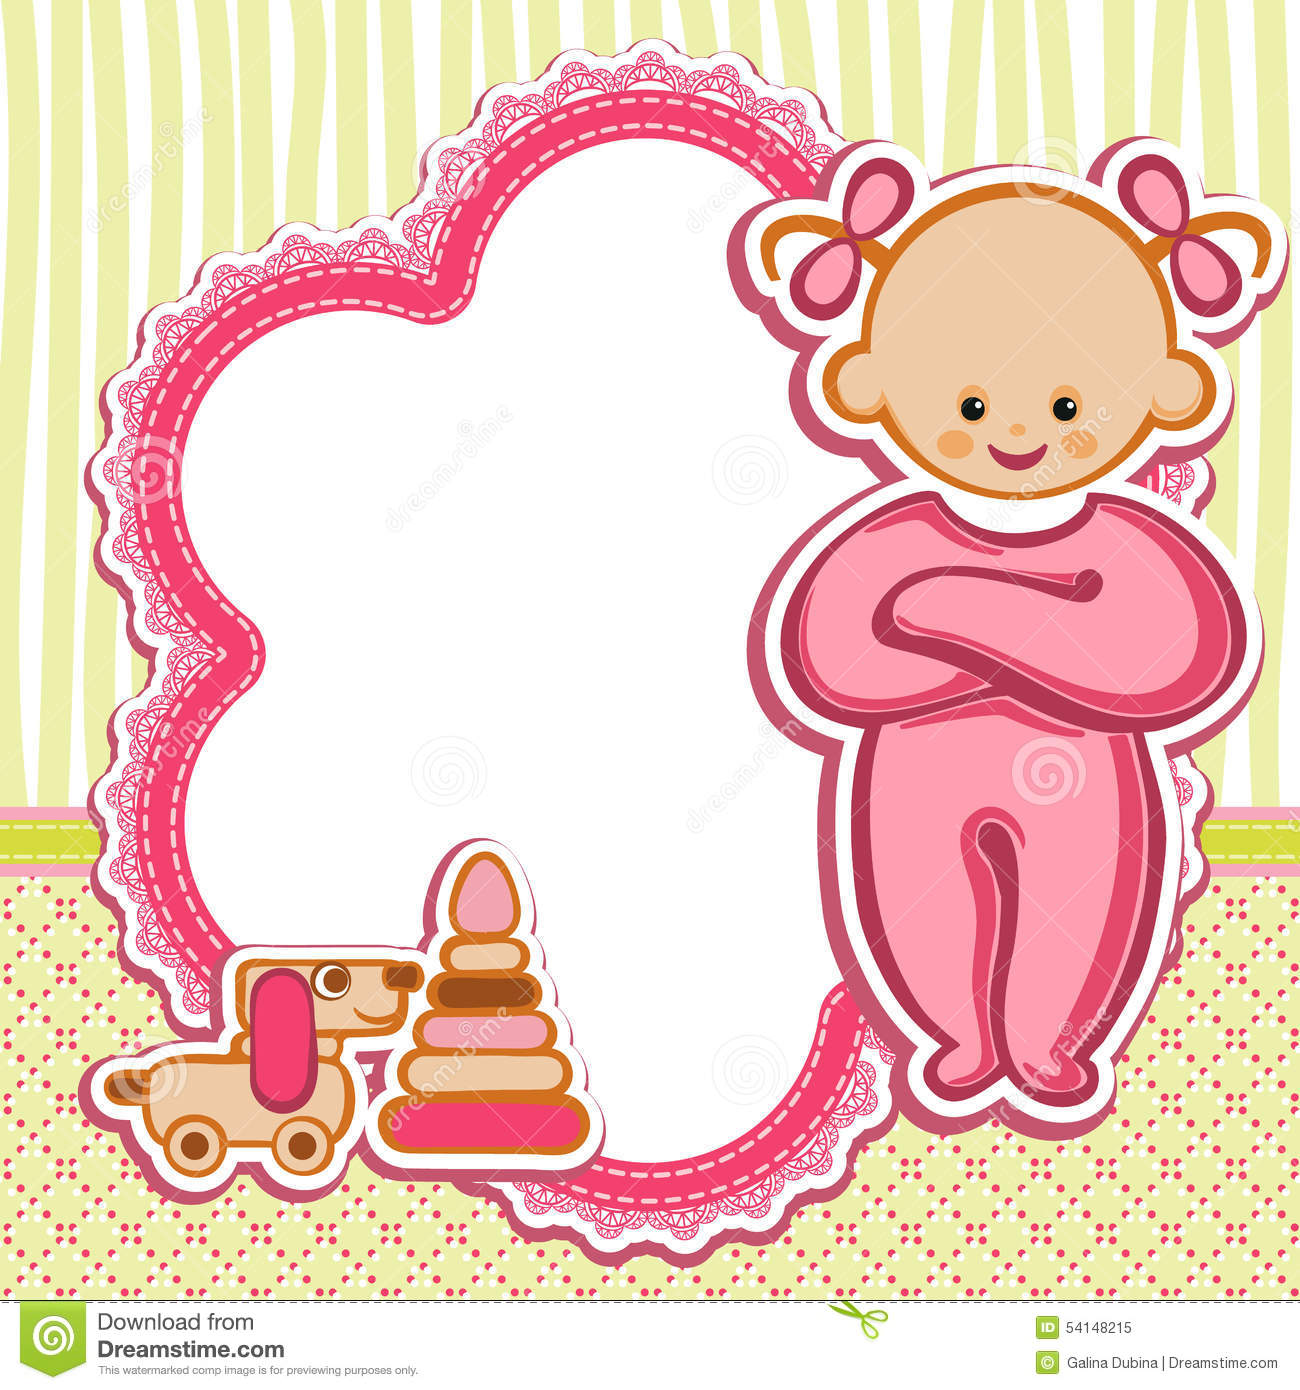 Baby girl birthday greetings images greeting card examples card for baby girl stock vector illustration of birth 54148215 card for baby girl kristyandbryce images kristyandbryce Images